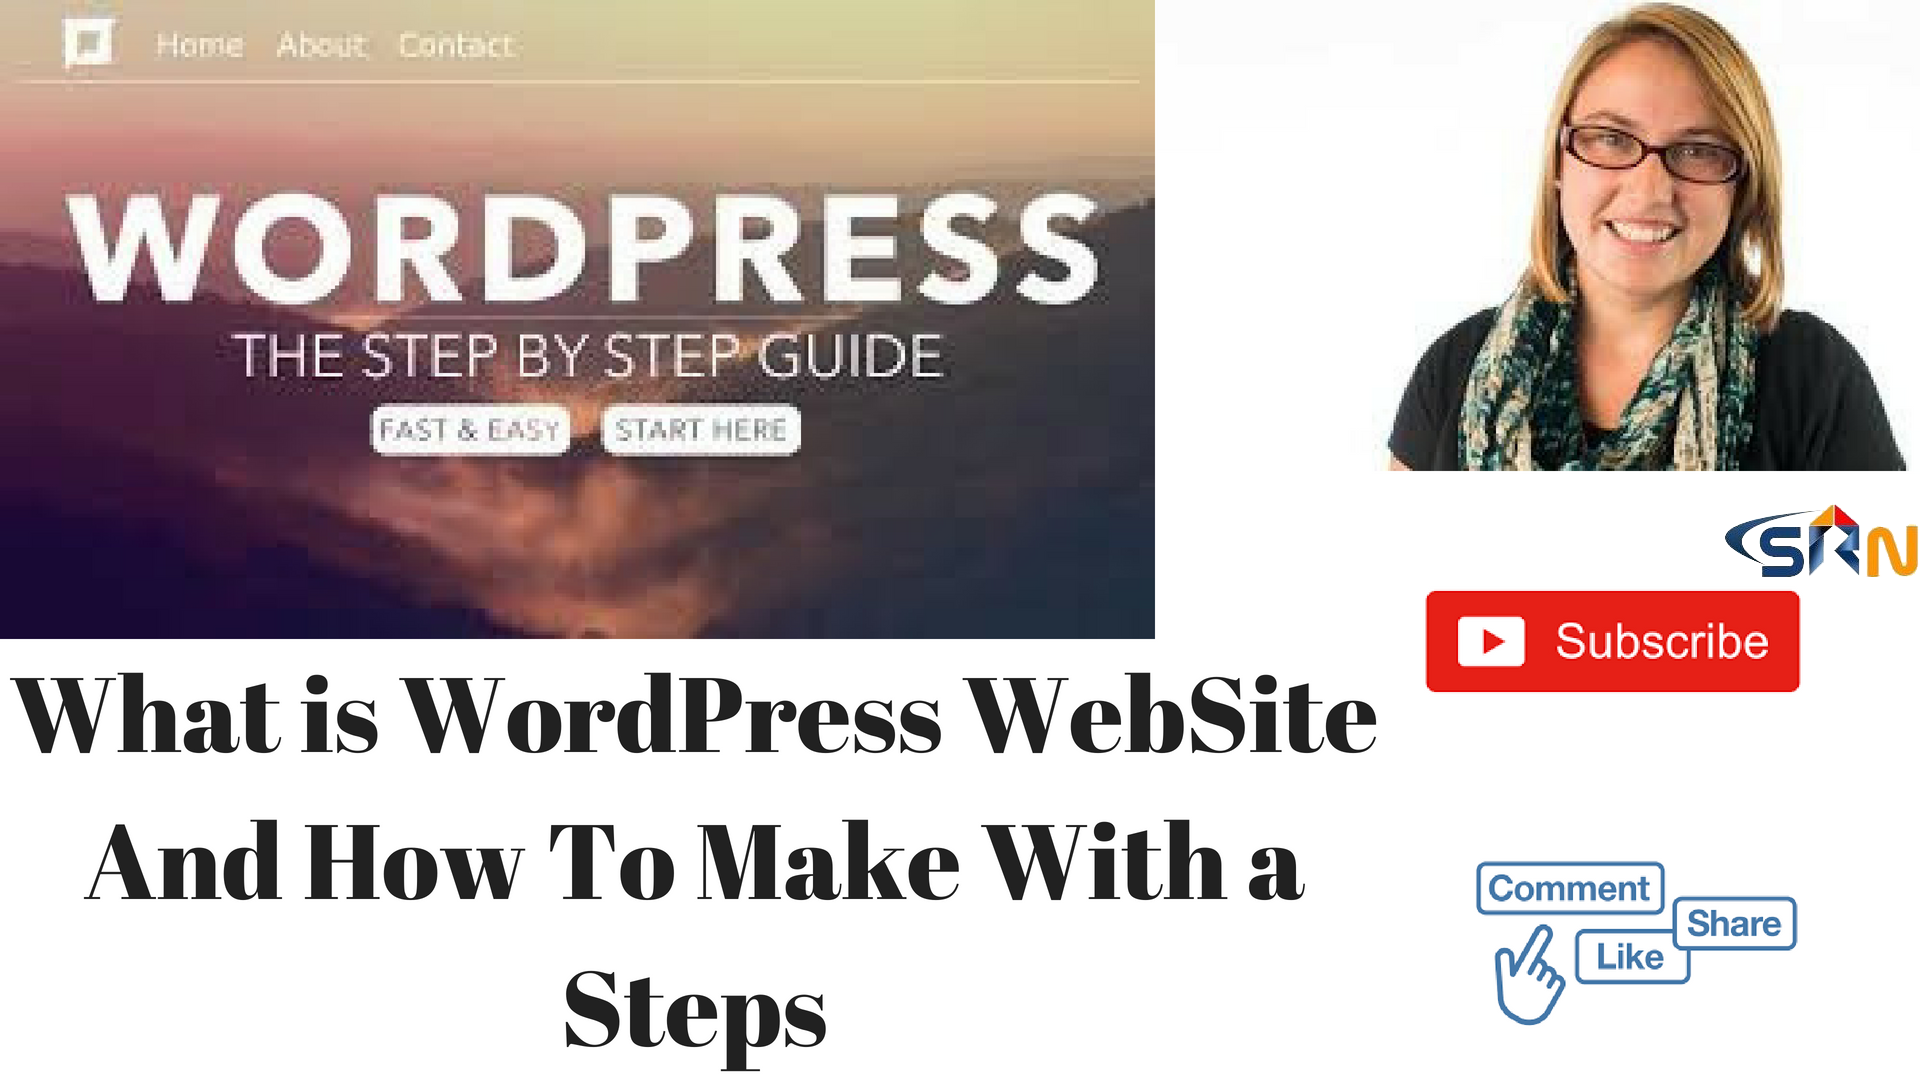 What is WordPress Website And How To Make With a Steps